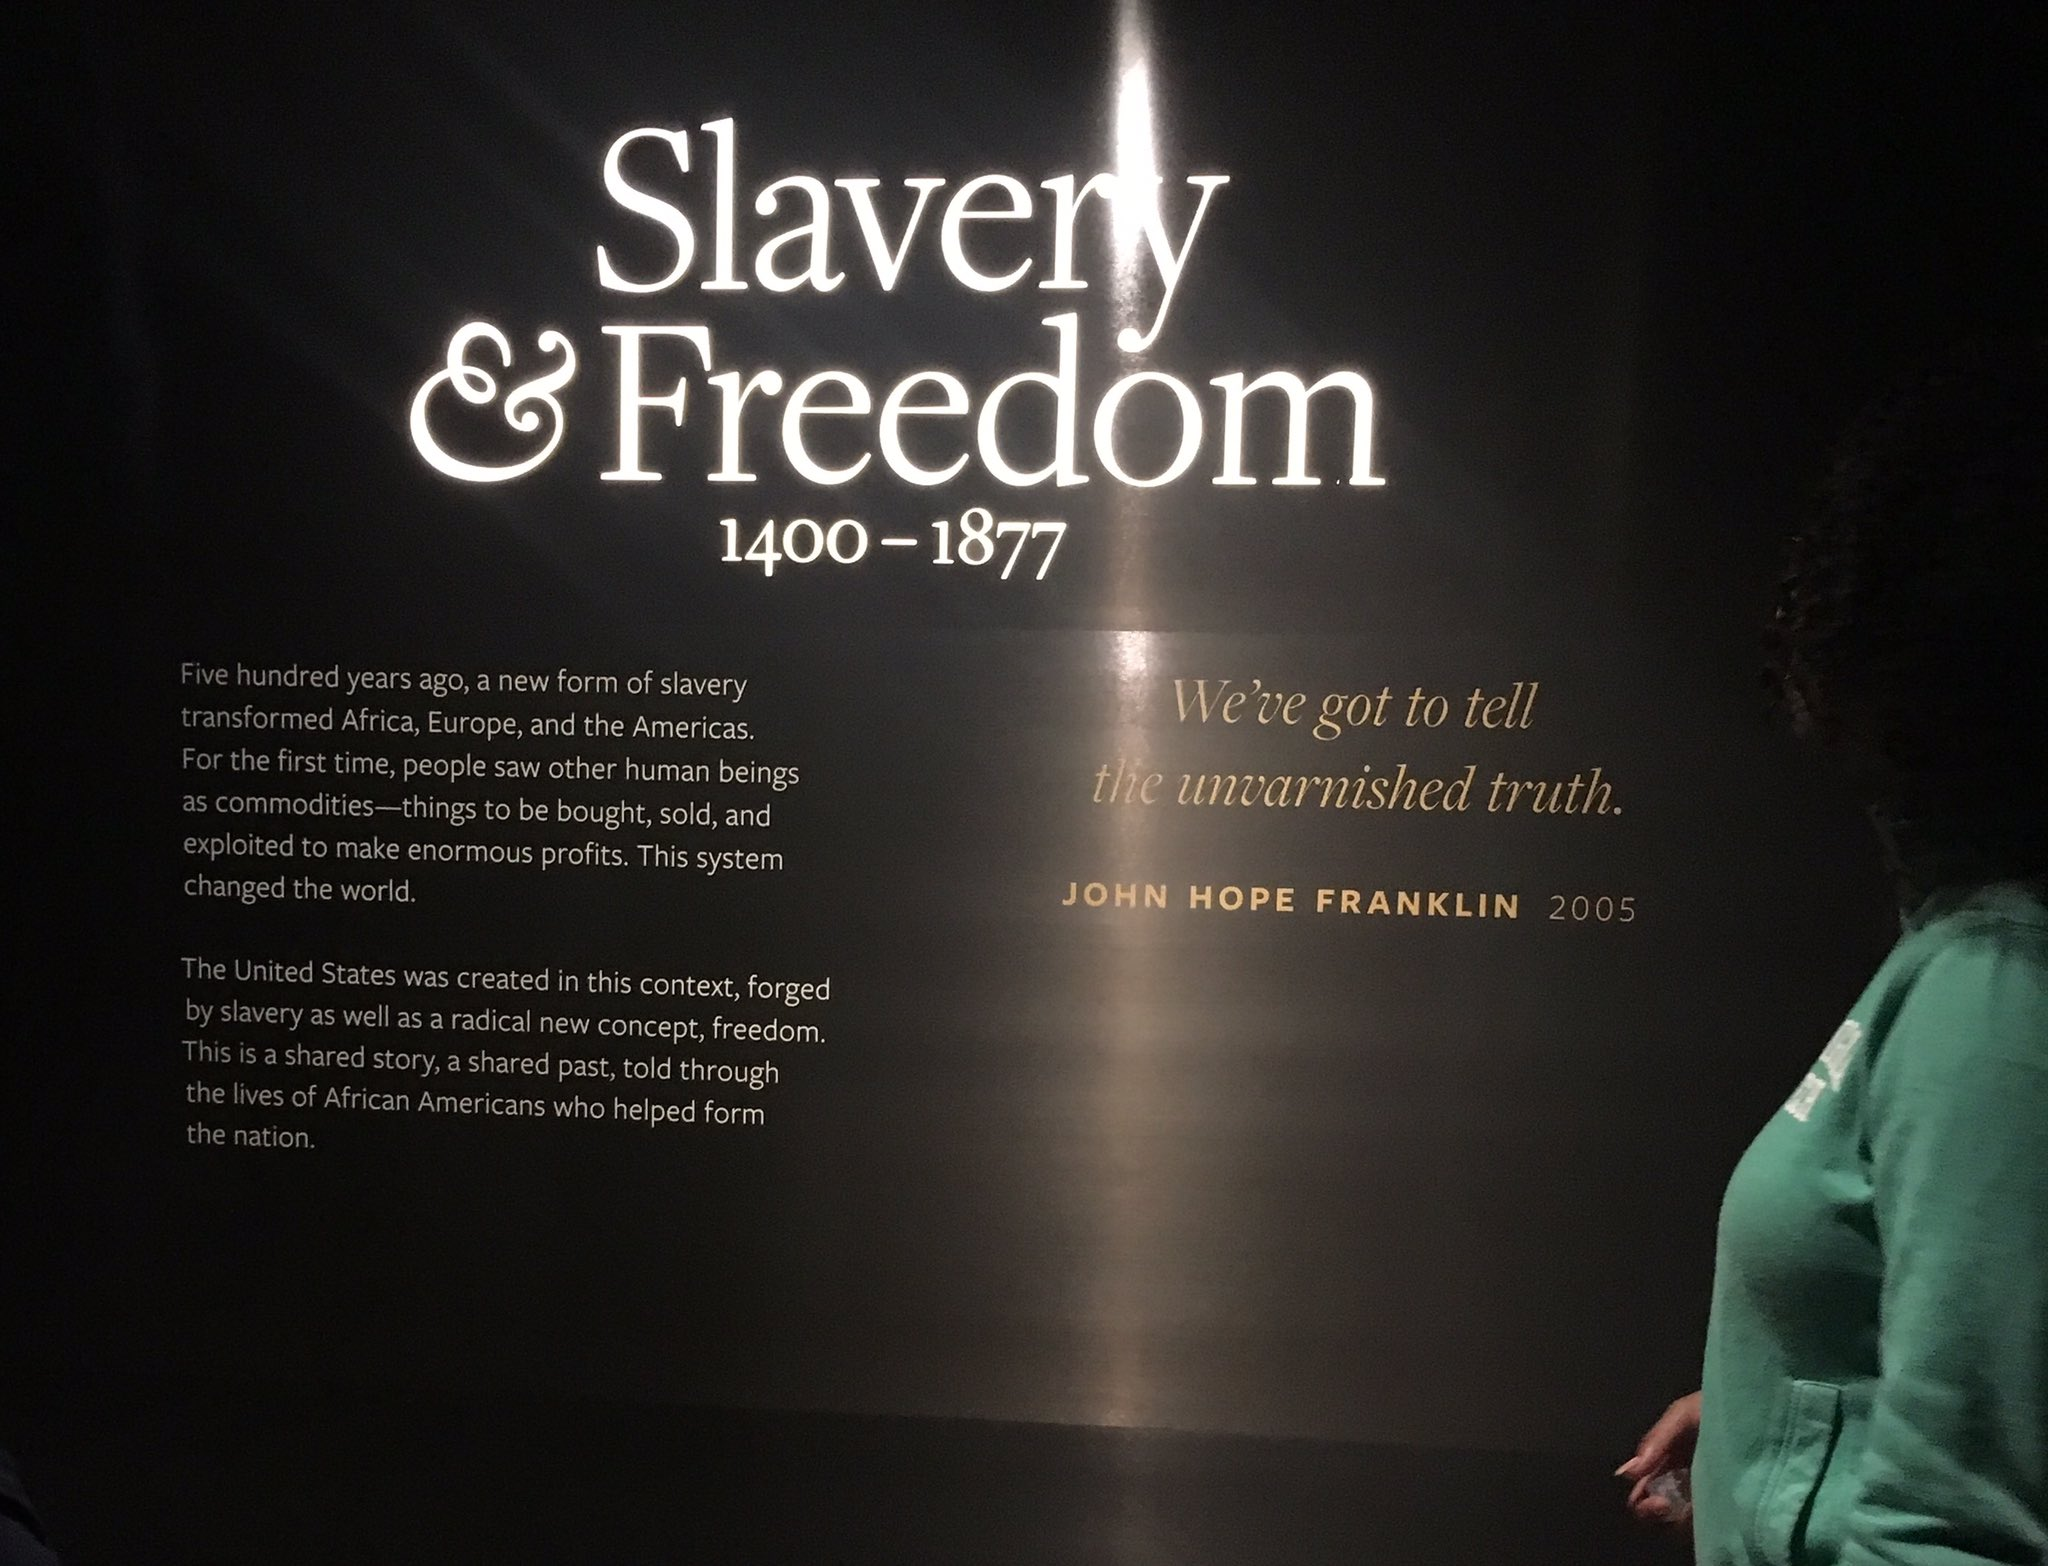 """The United States was...forged by slavery as well as a radical new concept, freedom."" @GTdiversity https://t.co/y7J2G4w4gV"